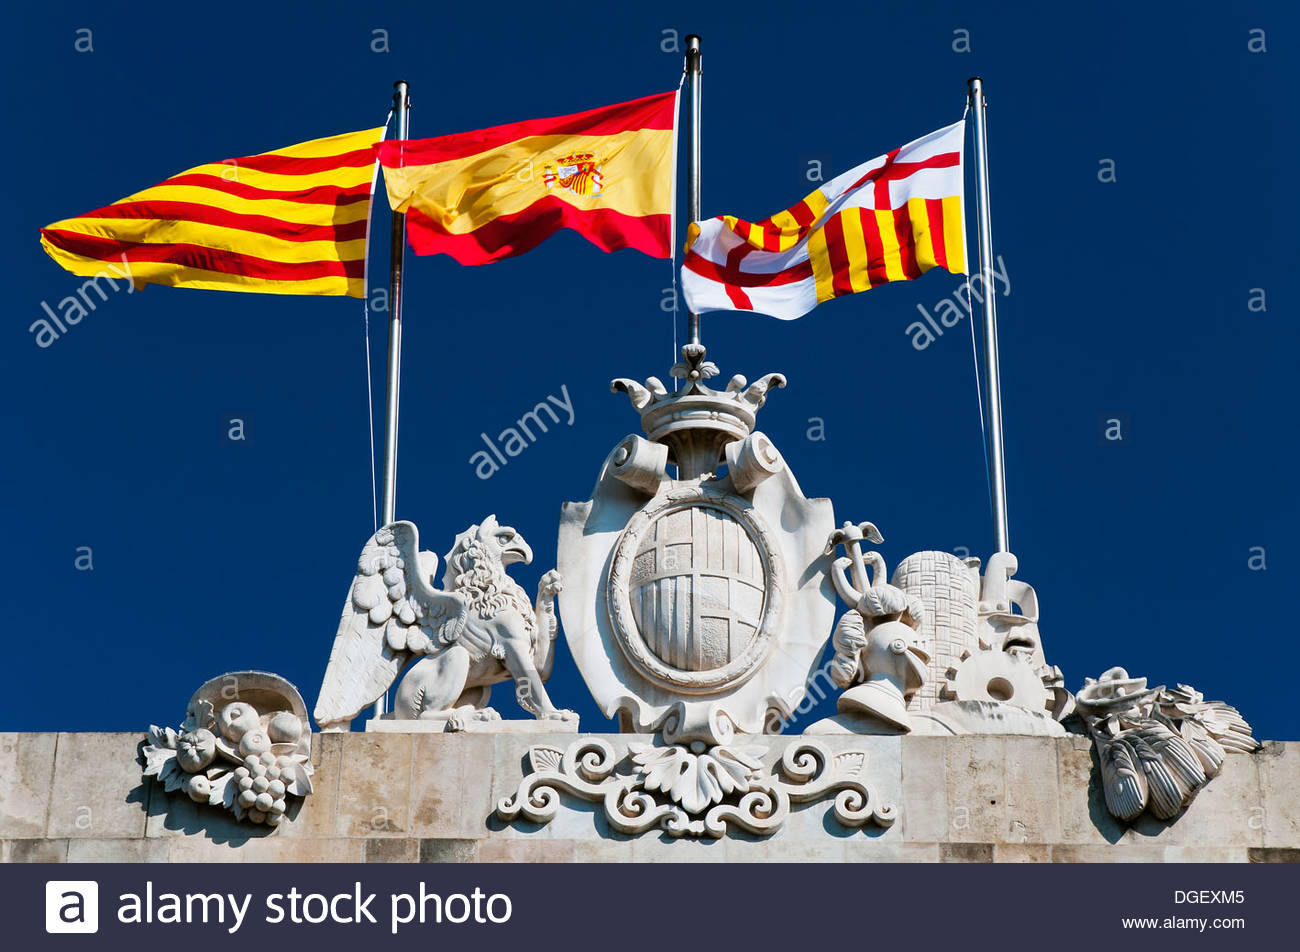 flags of catalonia spain and barcelona waving on the top of the